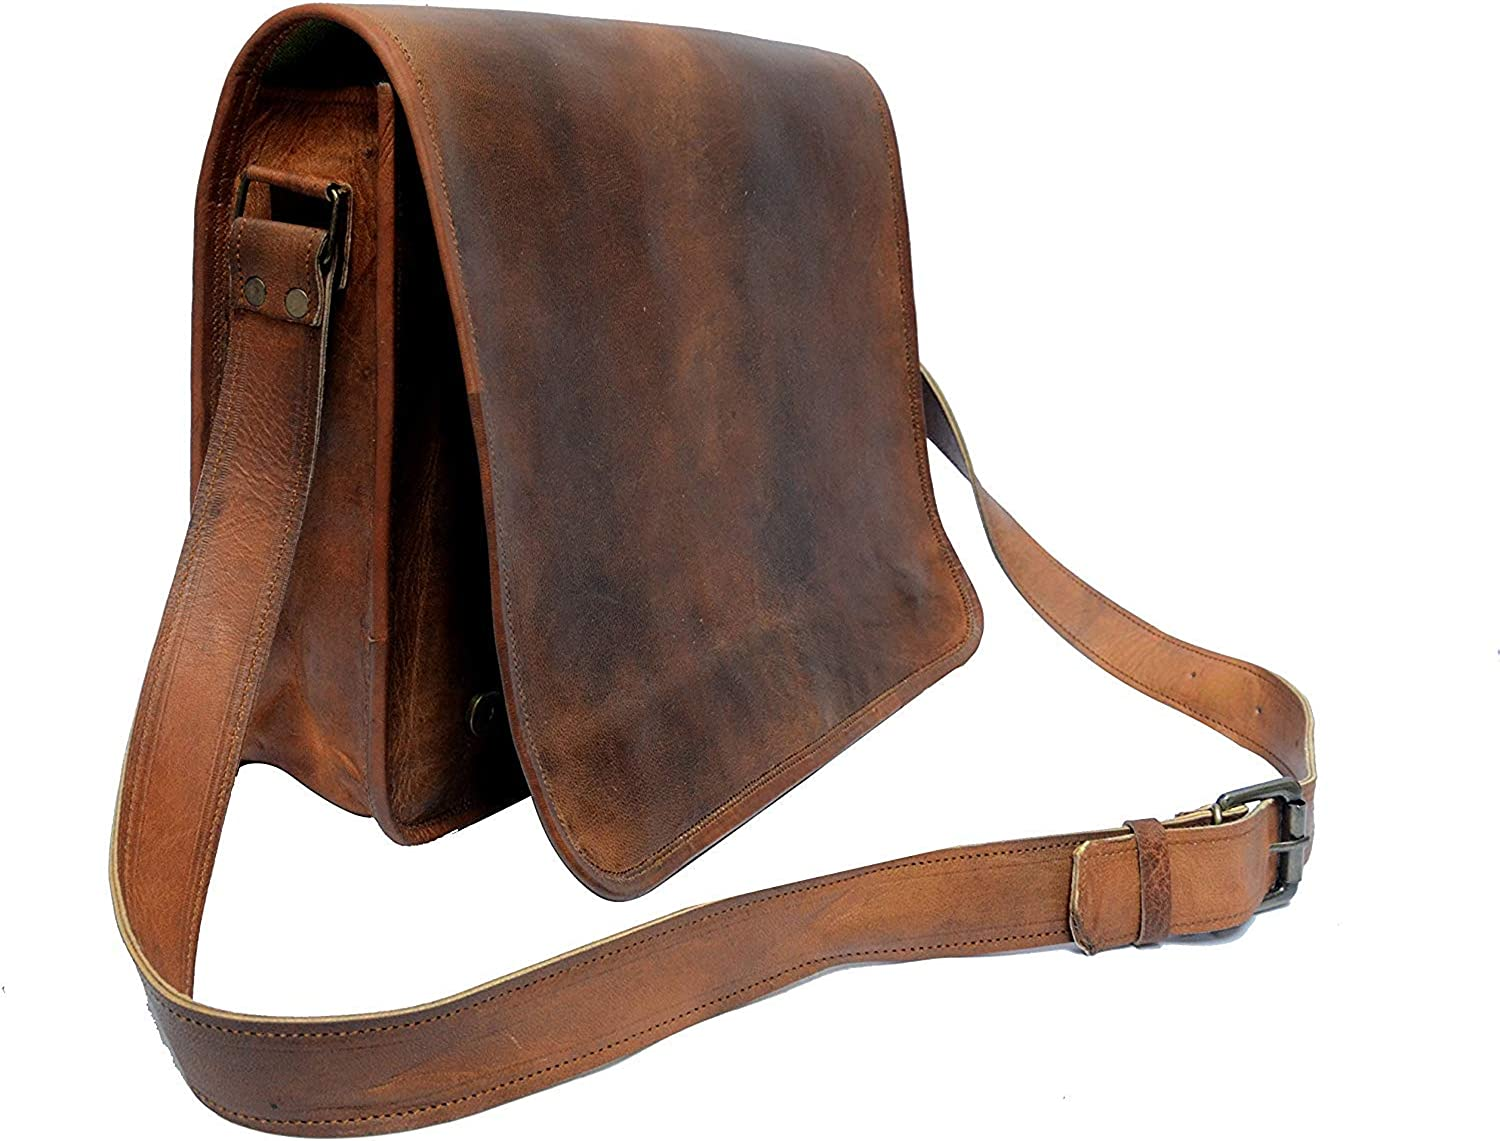 IndianHandoArt 13 inch Leather Real Messenger bag for Laptop Briefcase Satchel Men and Women